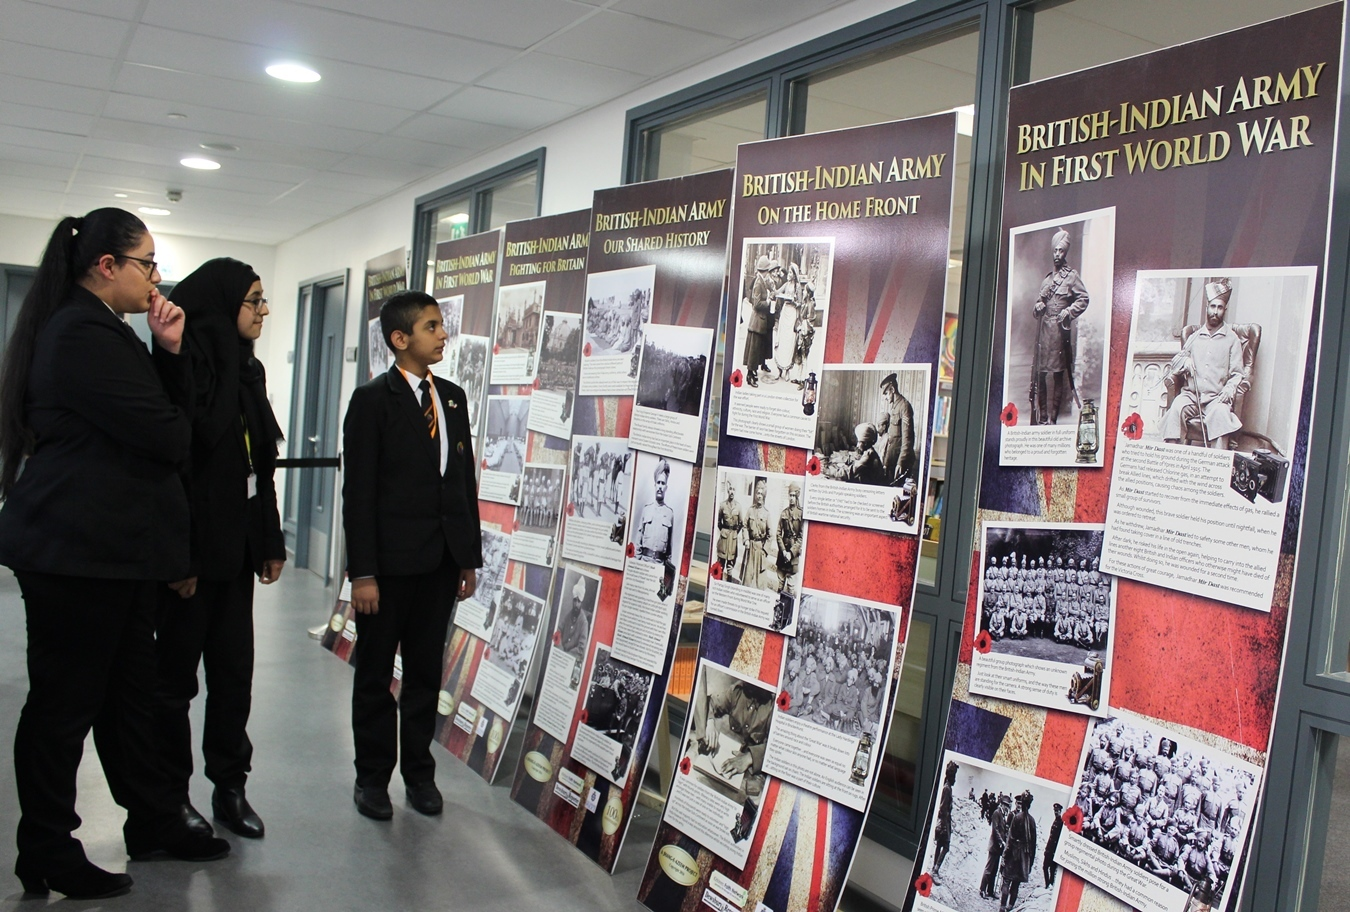 University Academy Keighley finding out about the role of the British-Indian Army in the First World War